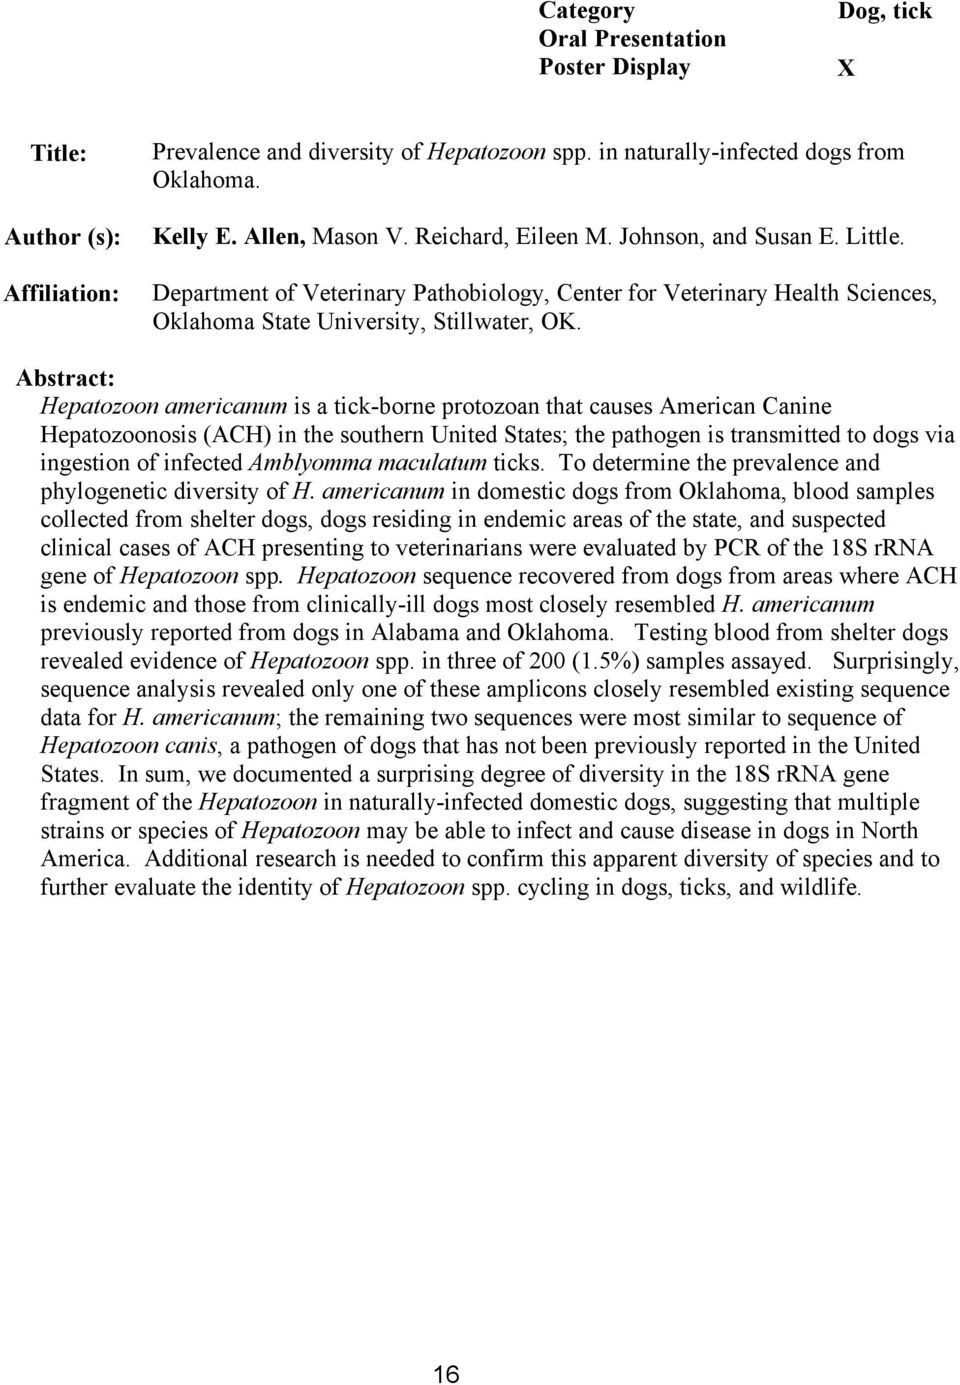 Abstract: Hepatozoon americanum is a tick-borne protozoan that causes American Canine Hepatozoonosis (ACH) in the southern United States; the pathogen is transmitted to dogs via ingestion of infected